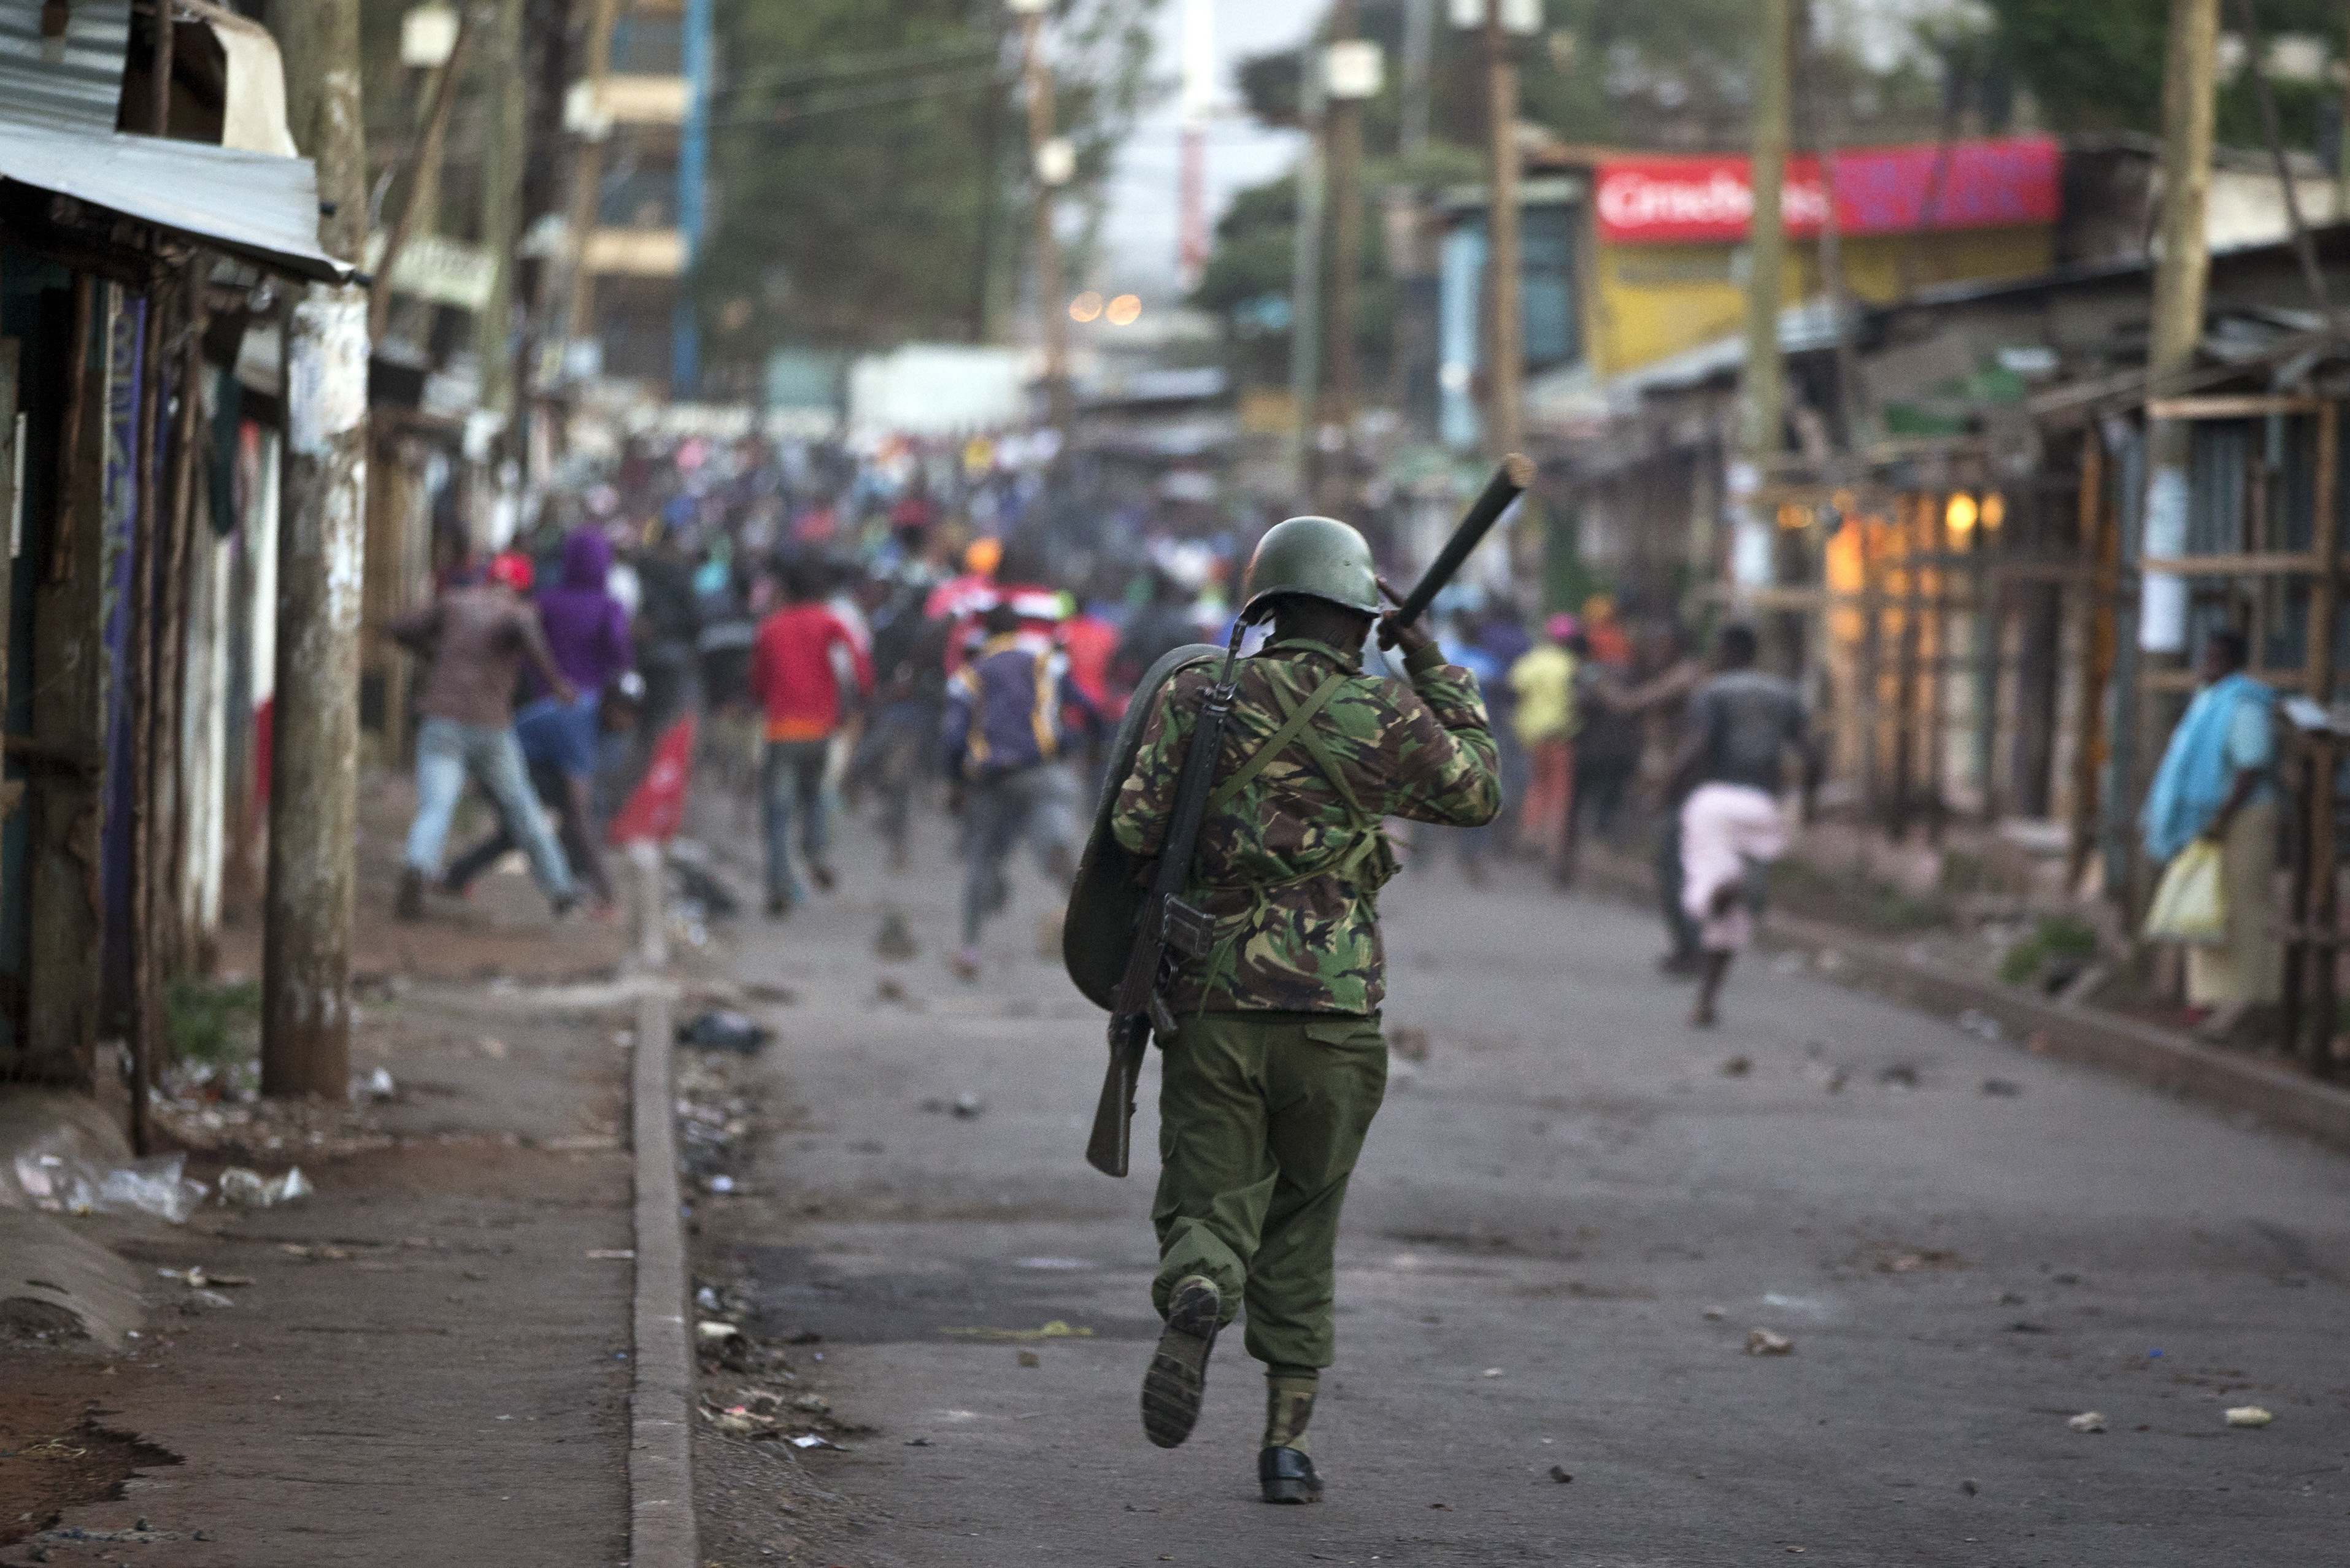 Opposition supporters run away from police during clashes after the election commission announced results from the Oct. 26 vote in the Kibera area of Nairobi, Kenya, Oct. 30, 2017.